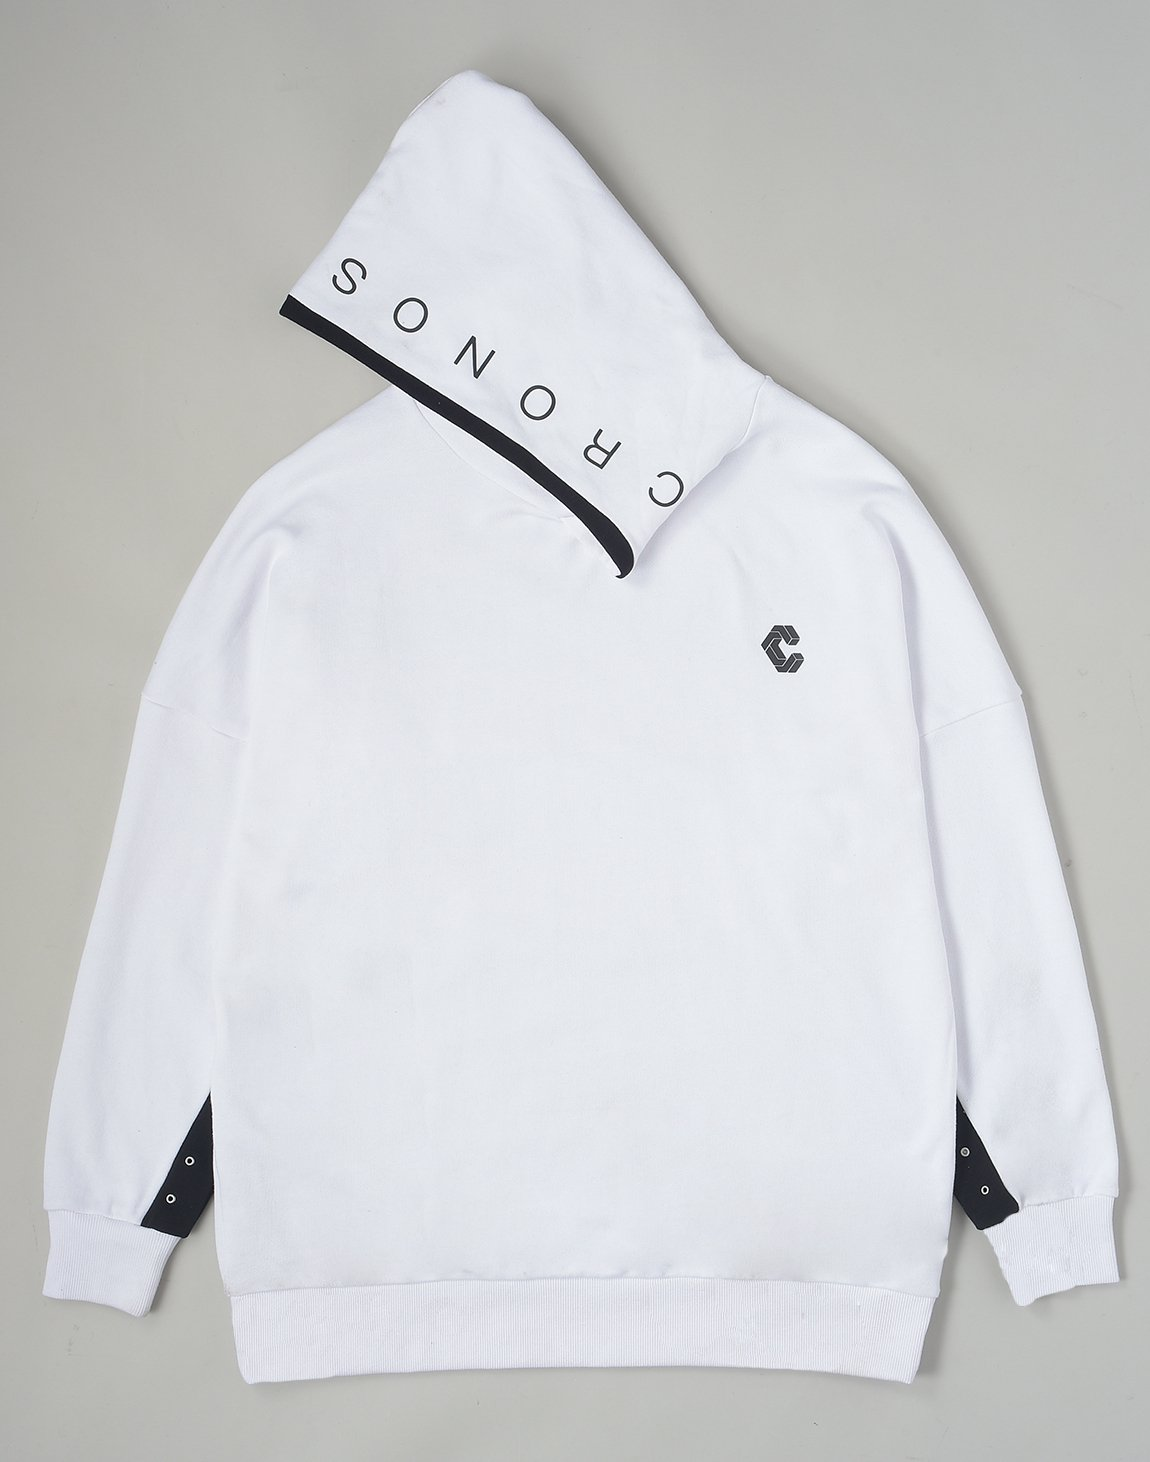 <img class='new_mark_img1' src='https://img.shop-pro.jp/img/new/icons1.gif' style='border:none;display:inline;margin:0px;padding:0px;width:auto;' />CRONOS NECK BUTTON HOODY【WHITE】《後日配送商品》